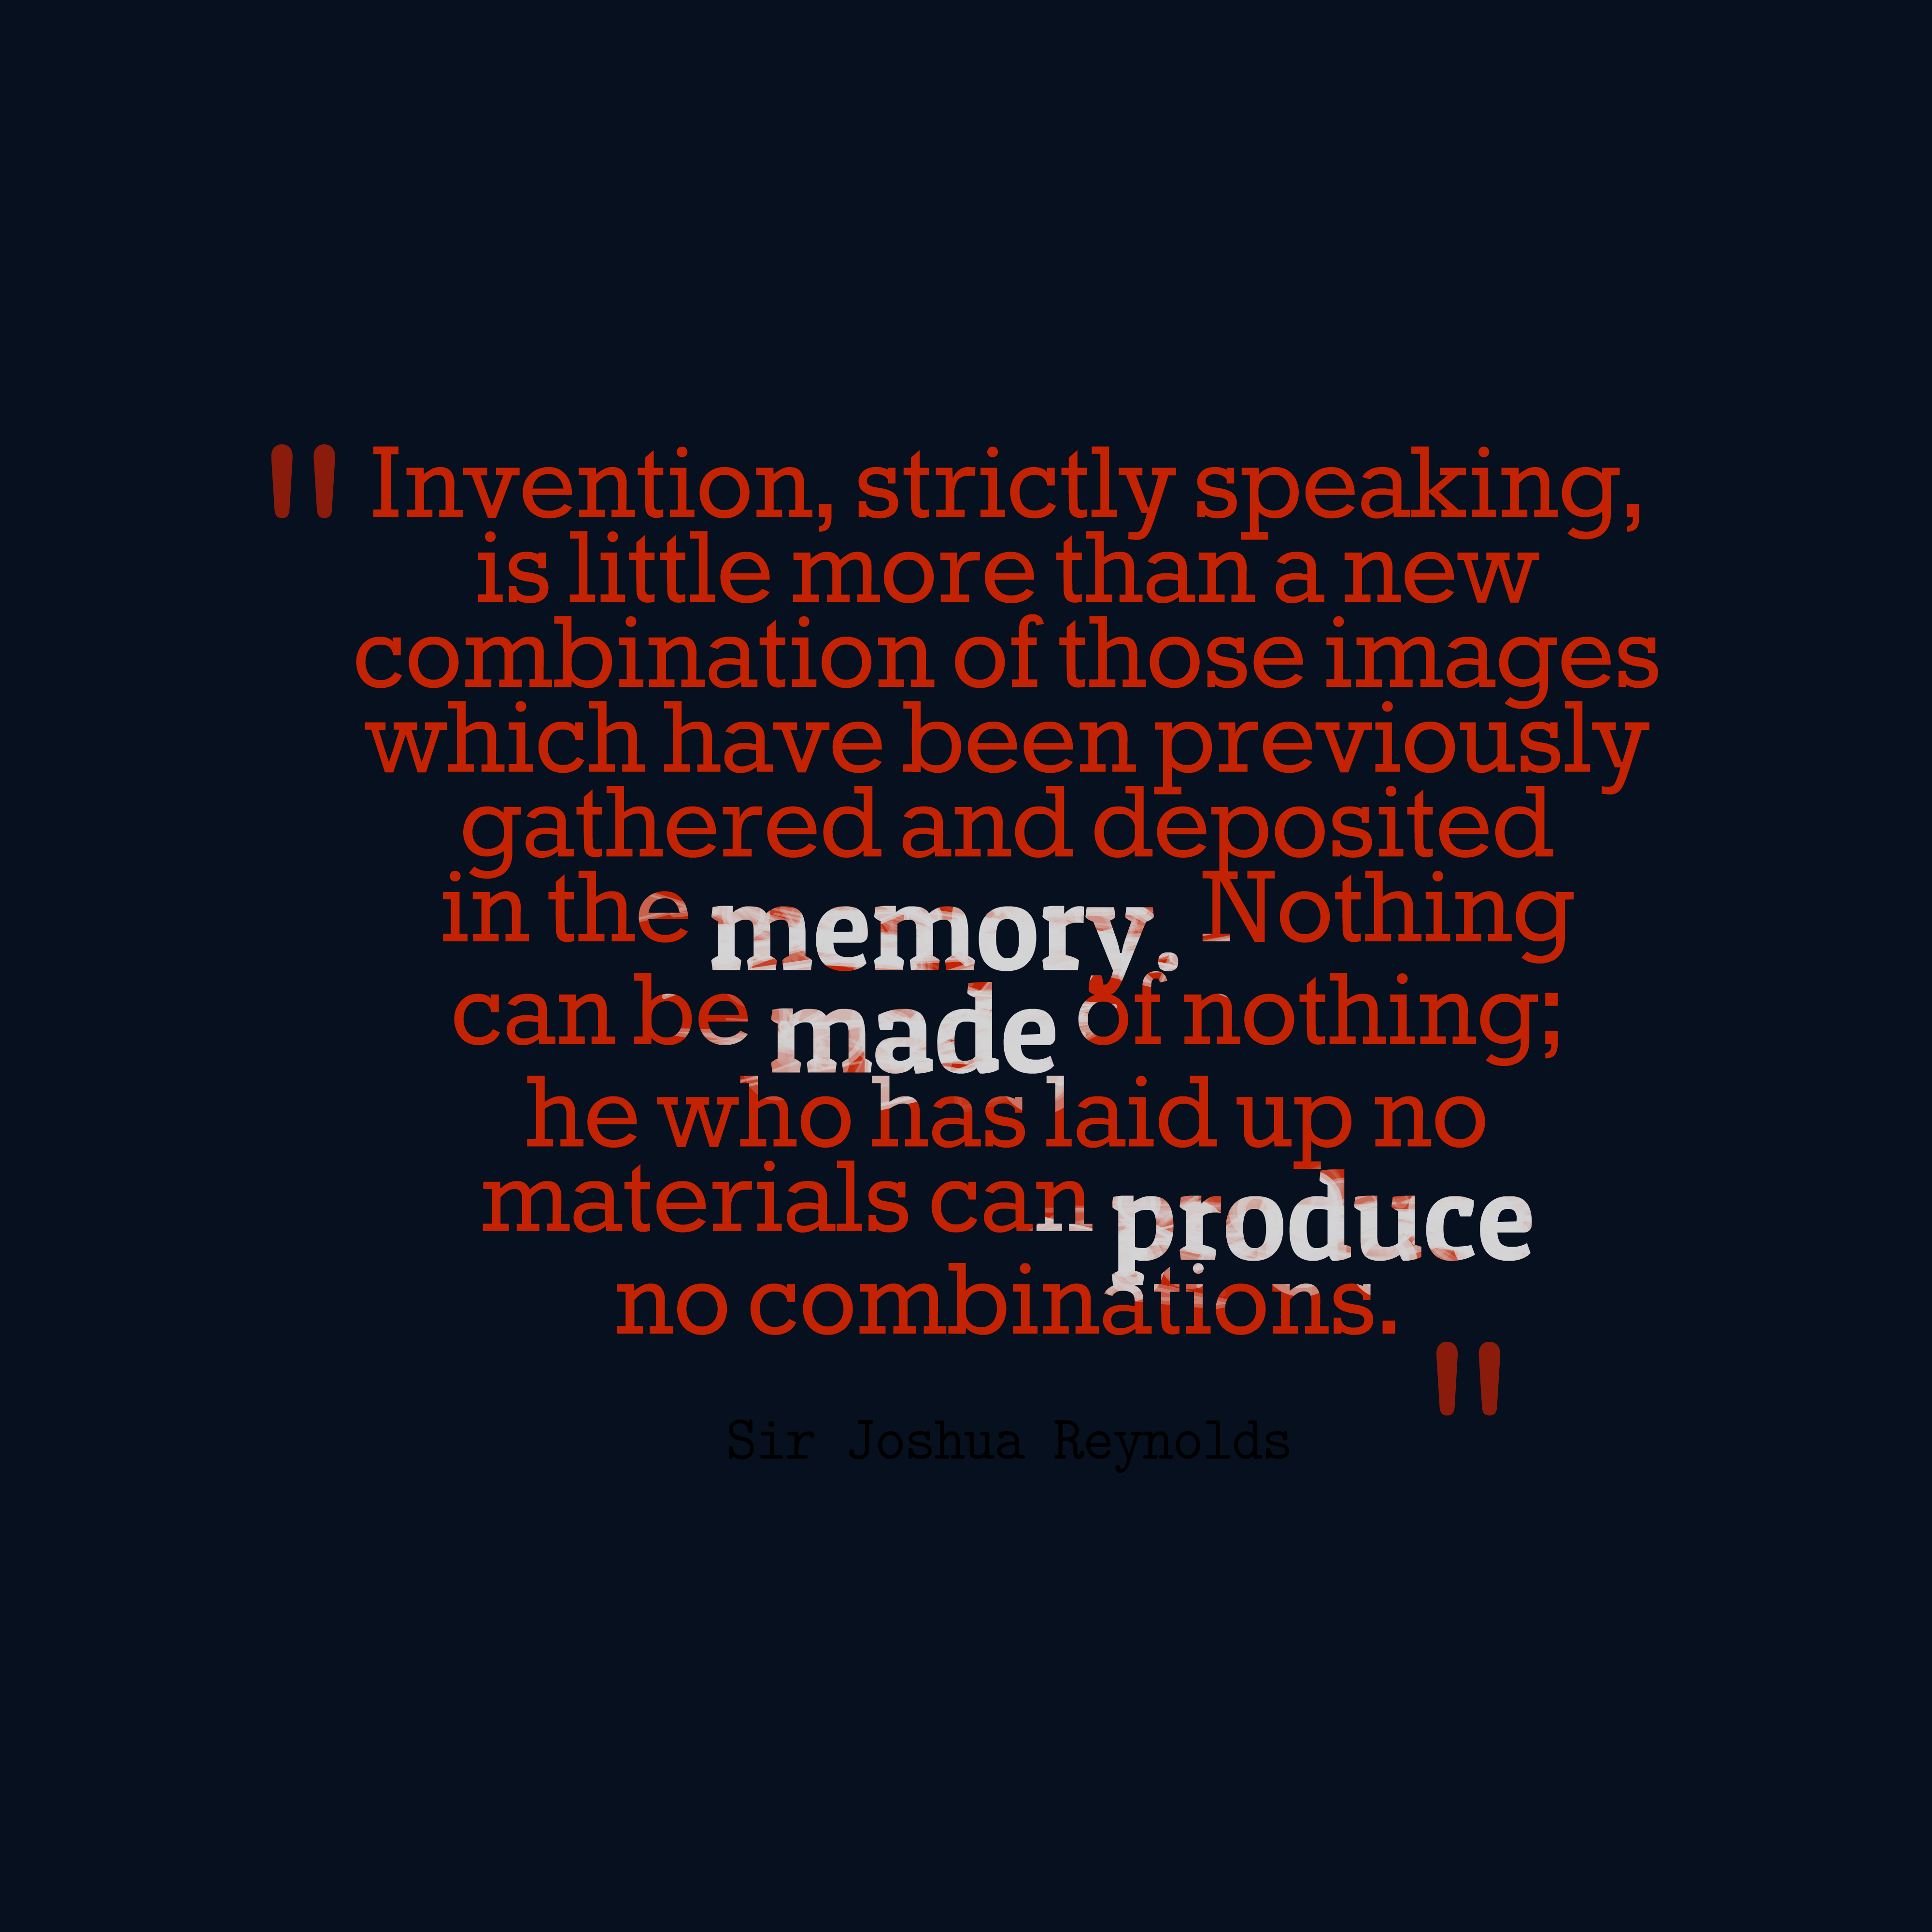 Quotes image of Invention, strictly speaking, is little more than a new combination of those images which have been previously gathered and deposited in the memory. Nothing can be made of nothing; he who has laid up no materials can produce no combinations.